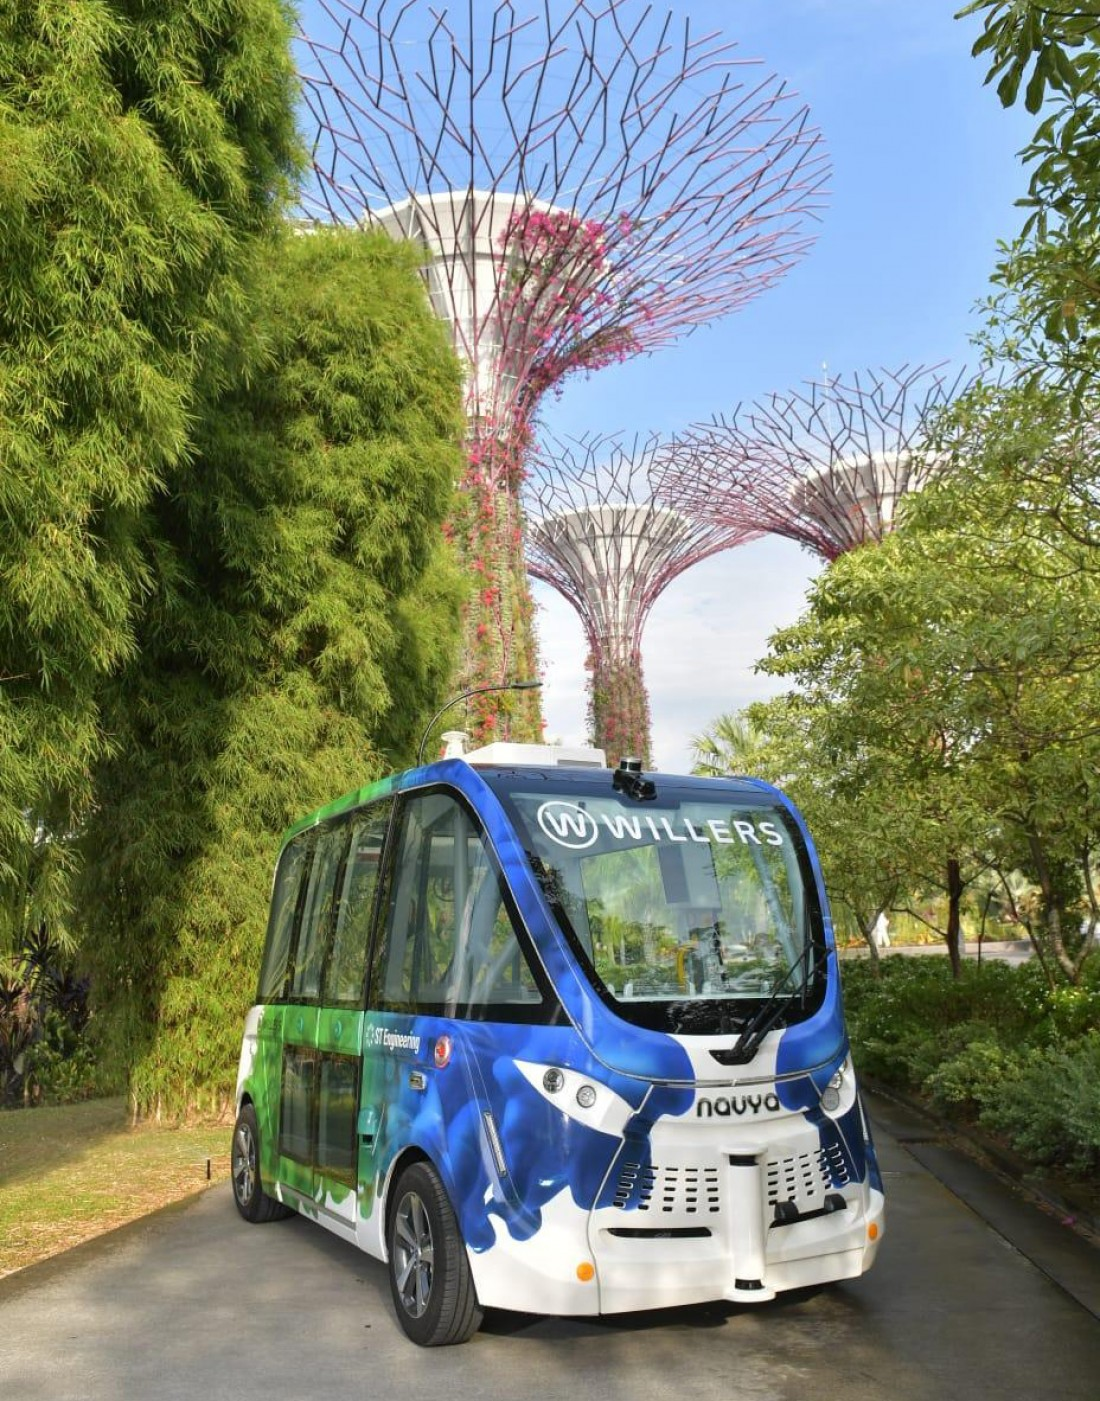 2 NAVYA AUTONOM SHUTTLES in Singapore Gardens by the Bay